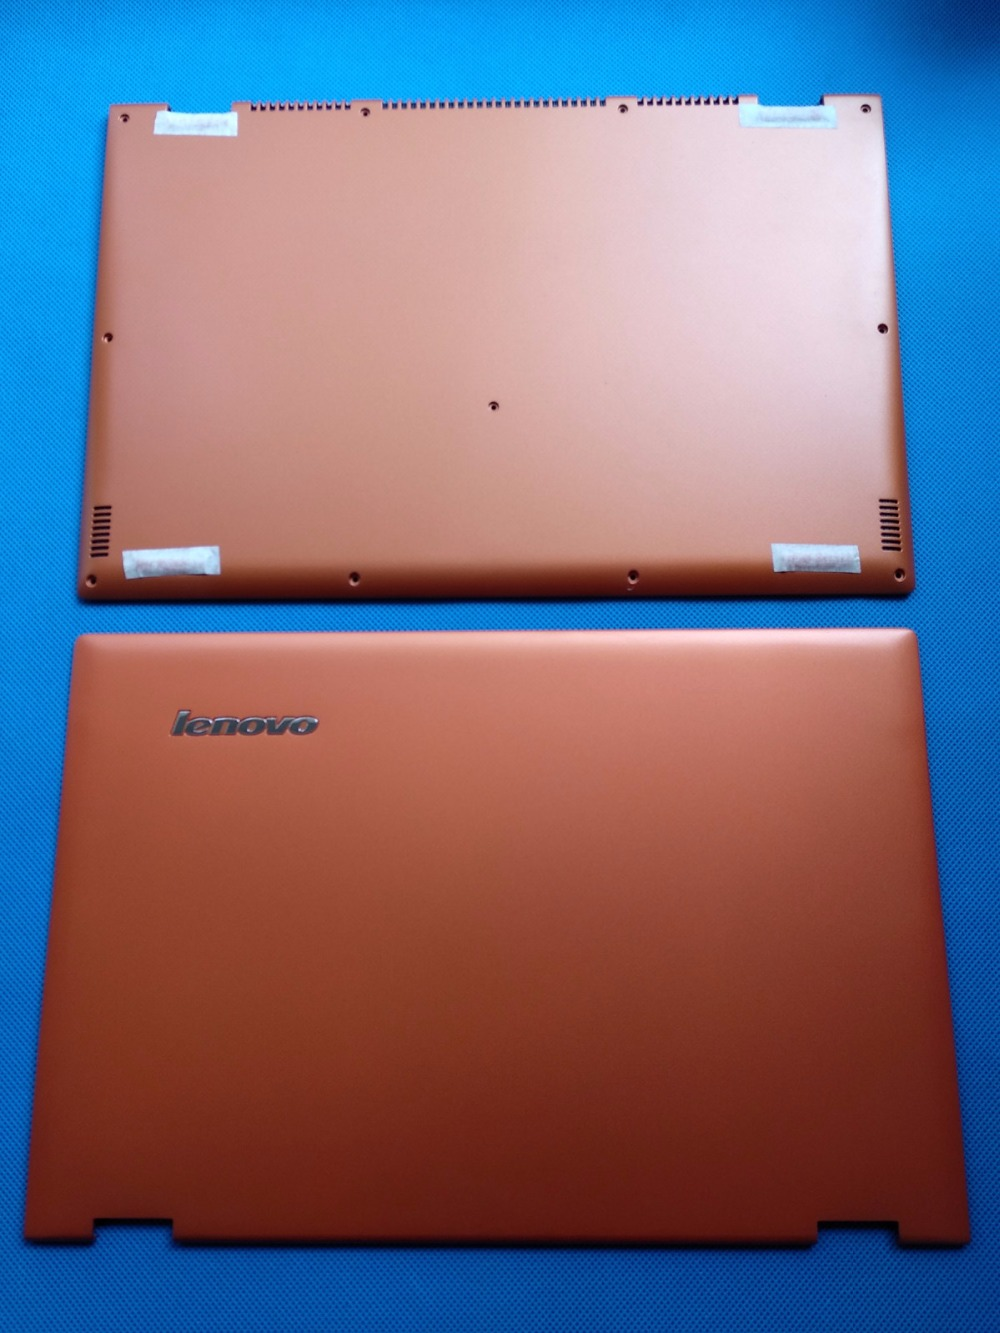 New Original Lenovo Ideapad Yoga 2 Pro 13 LCD Back Rear Lid Cover+ Base Cover Bottom Lower Case AM0S9000200 AM0S9000300 Orange new original for lenovo thinkpad x240 x240i base cover bottom case 04x5184 0c64937